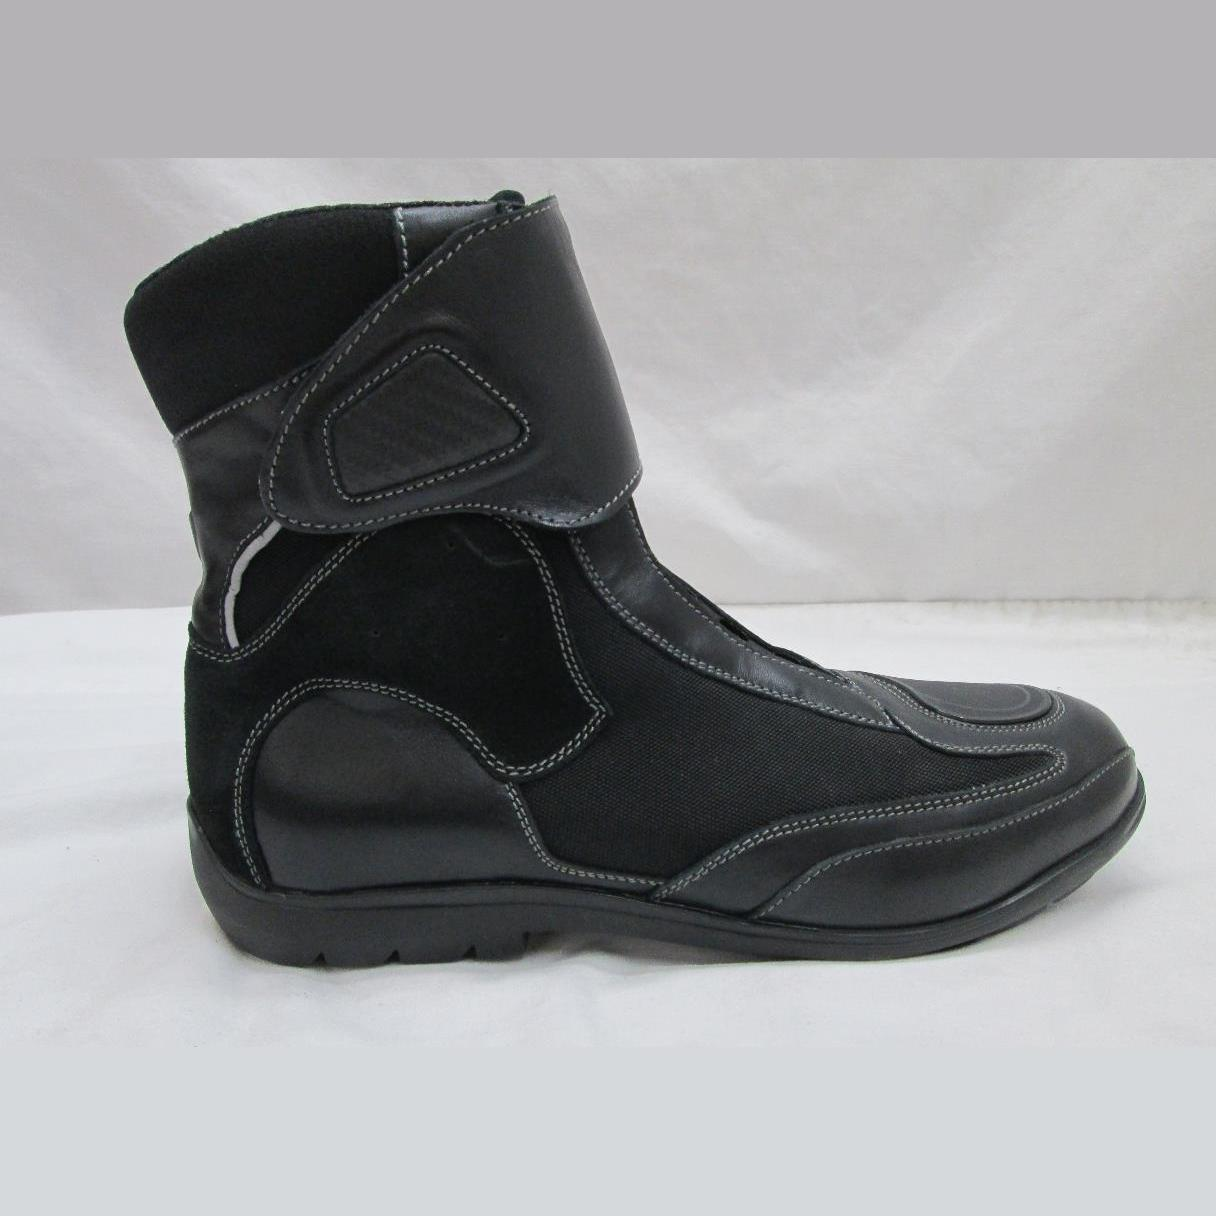 DAINESE SECHURA LEATHER BOOTS